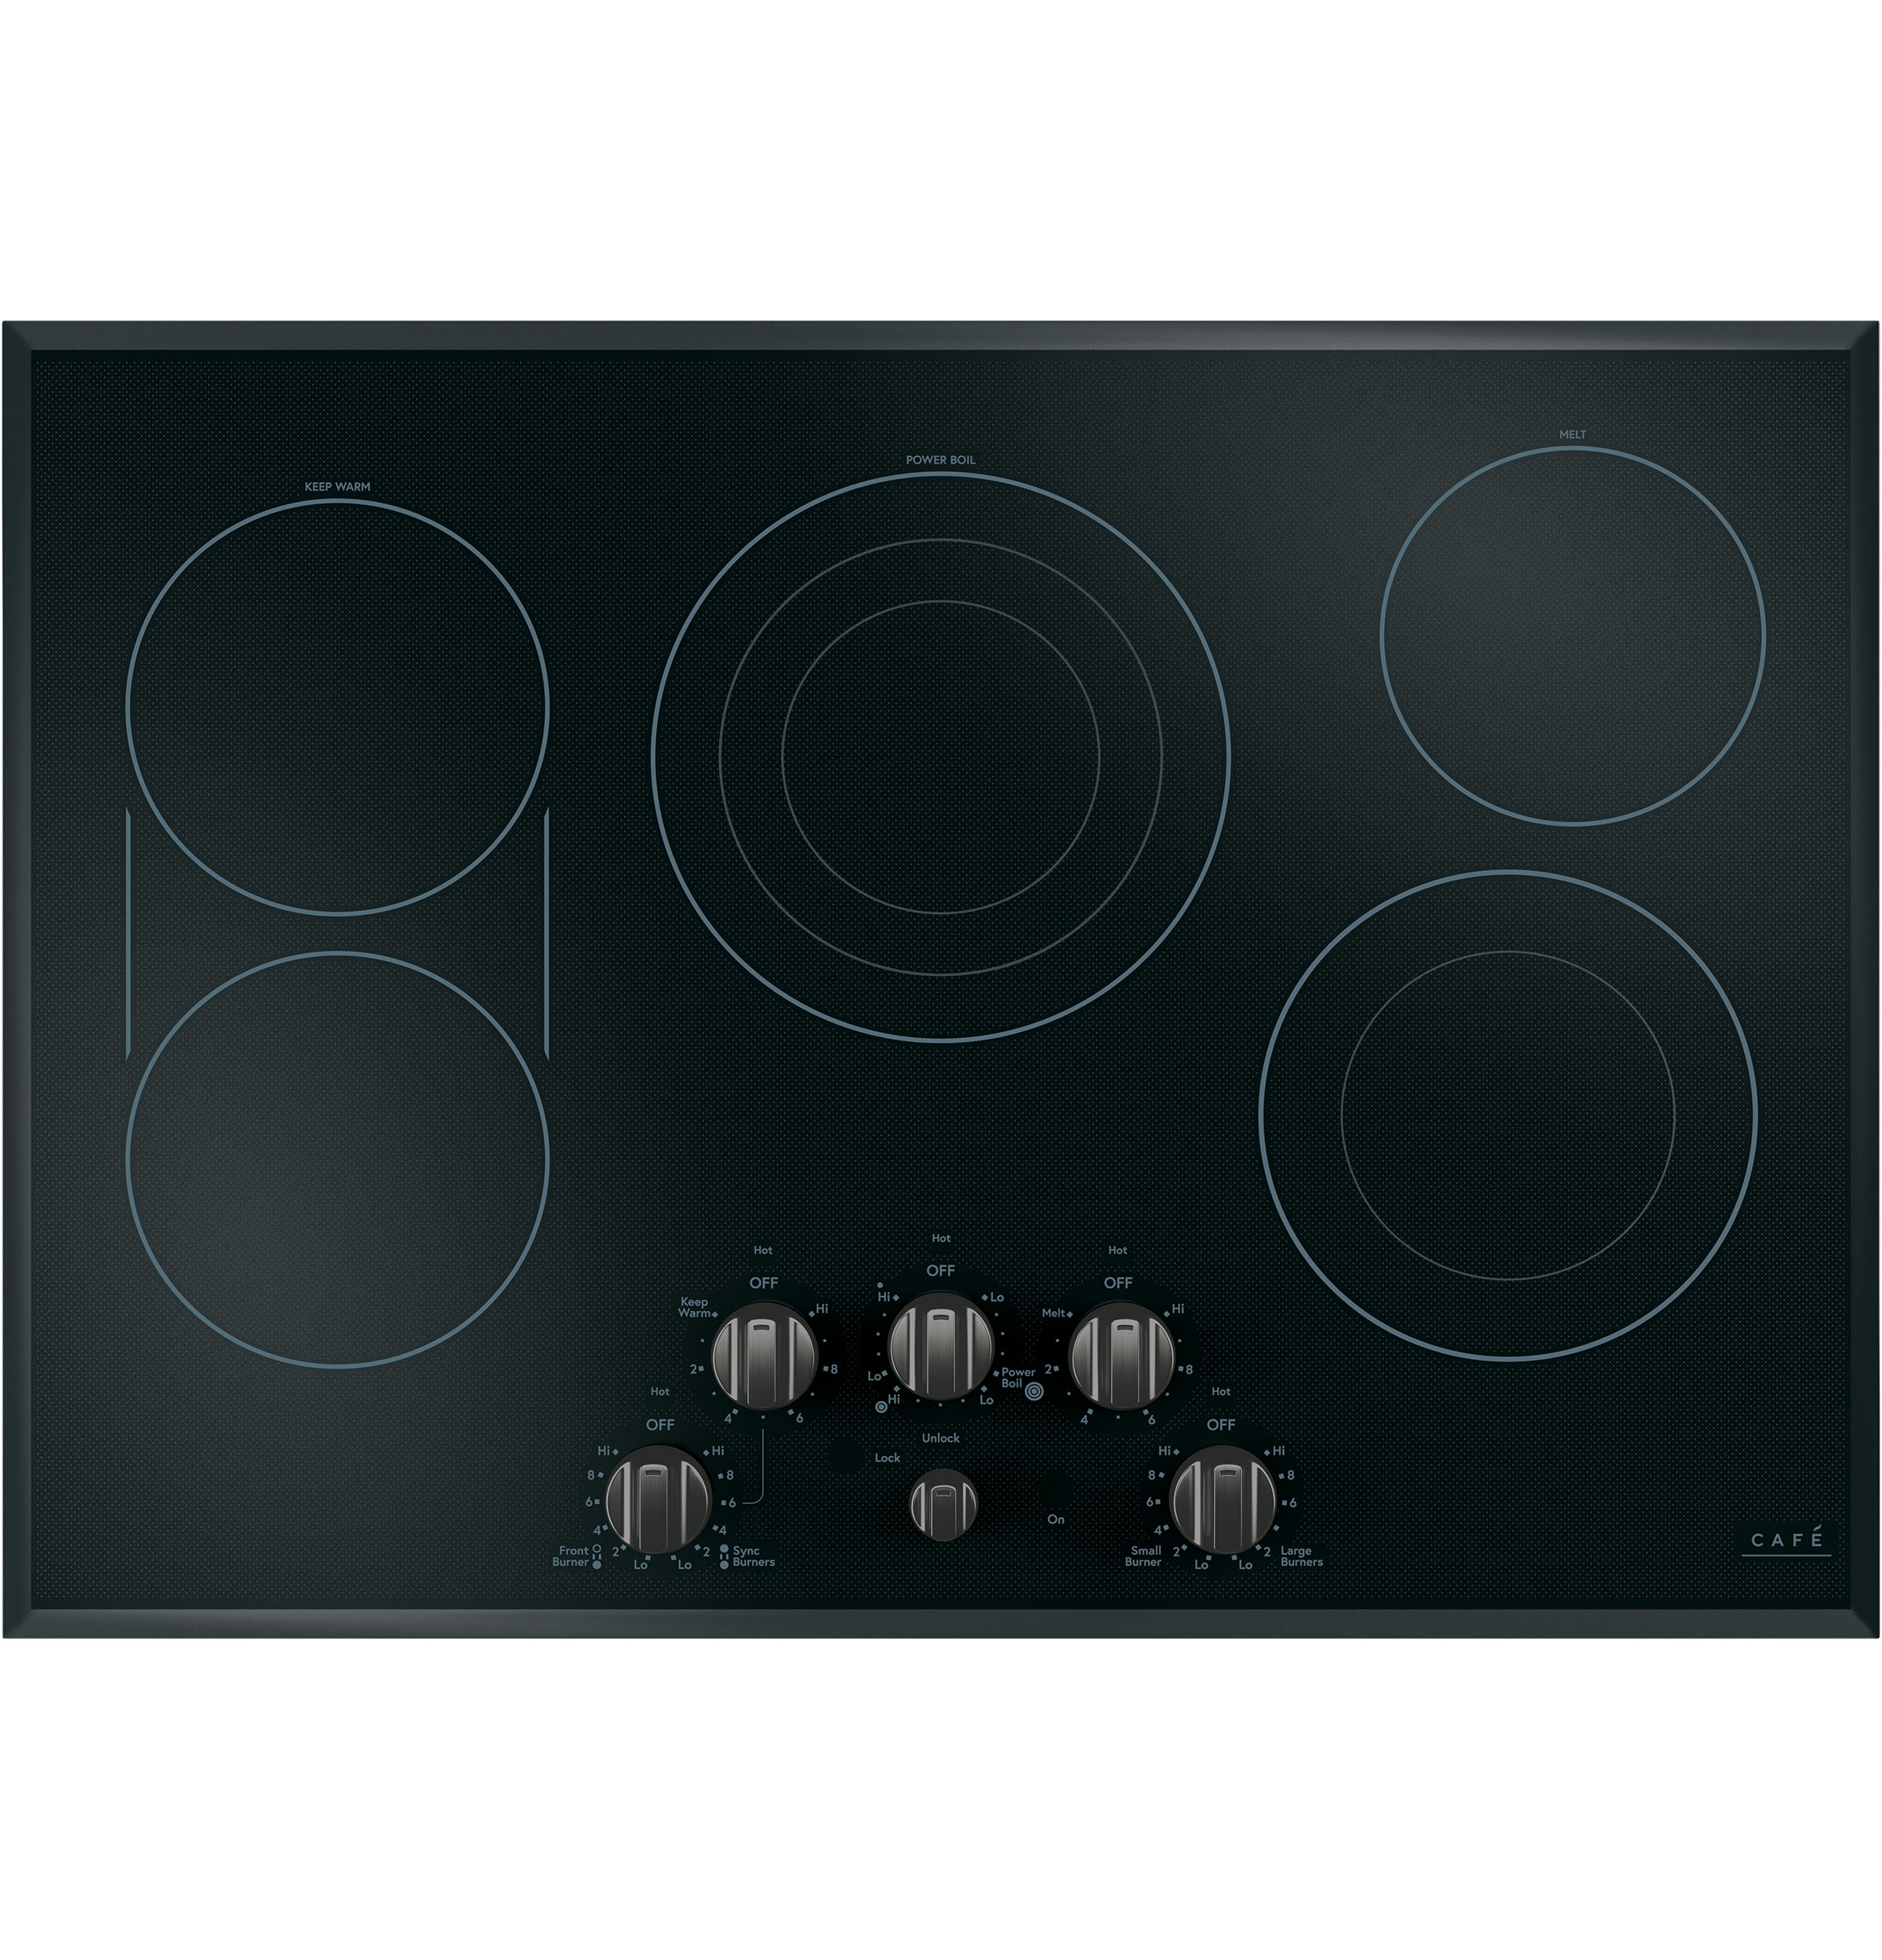 Cafe 5 Electric Cooktop Knobs - Brushed Black